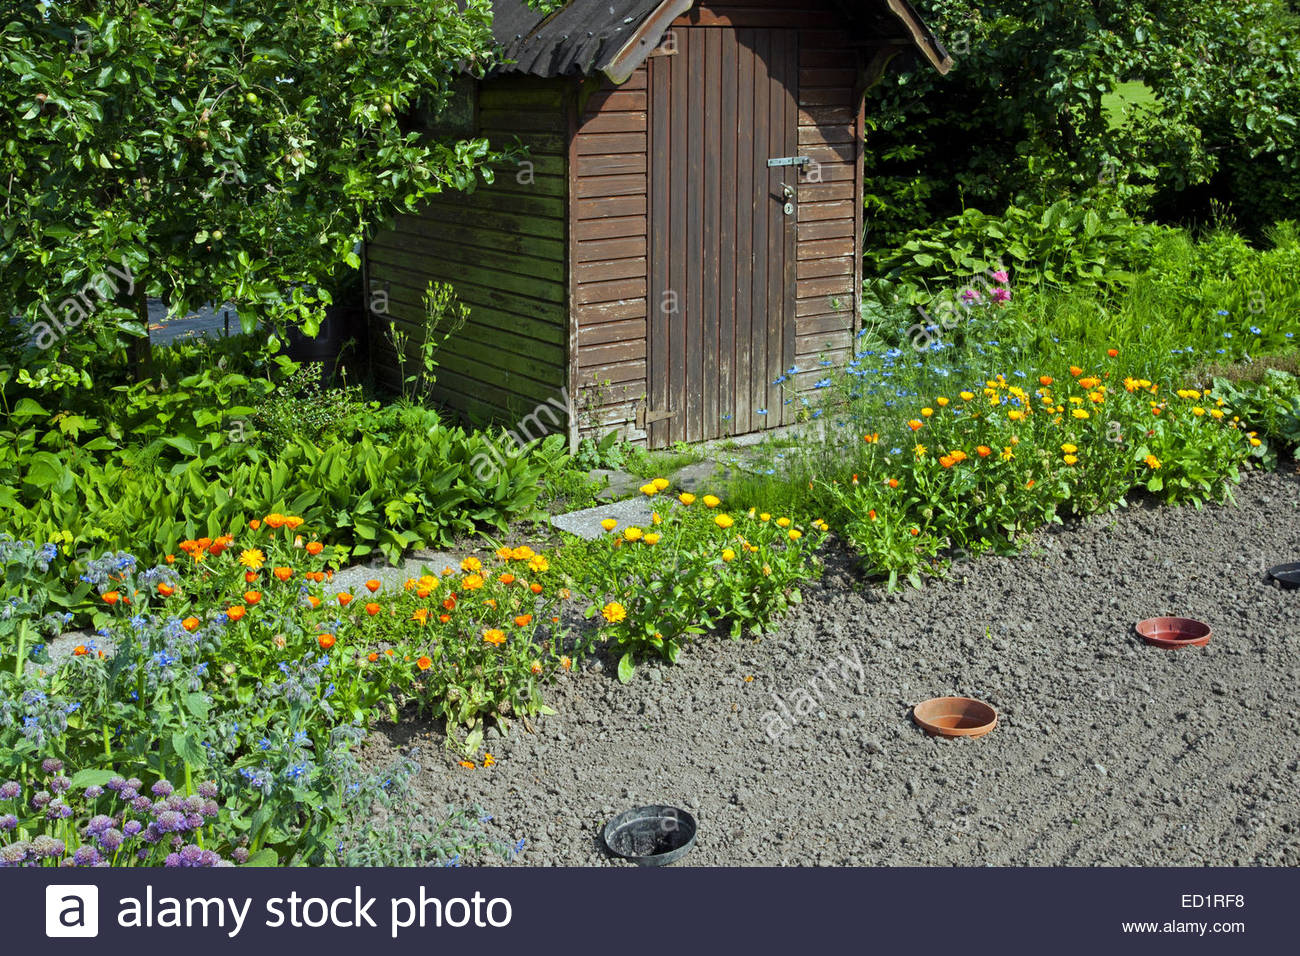 Garden shed, edible flowers and herbs growing in kitchen garden / herb garden / potager - Stock Image